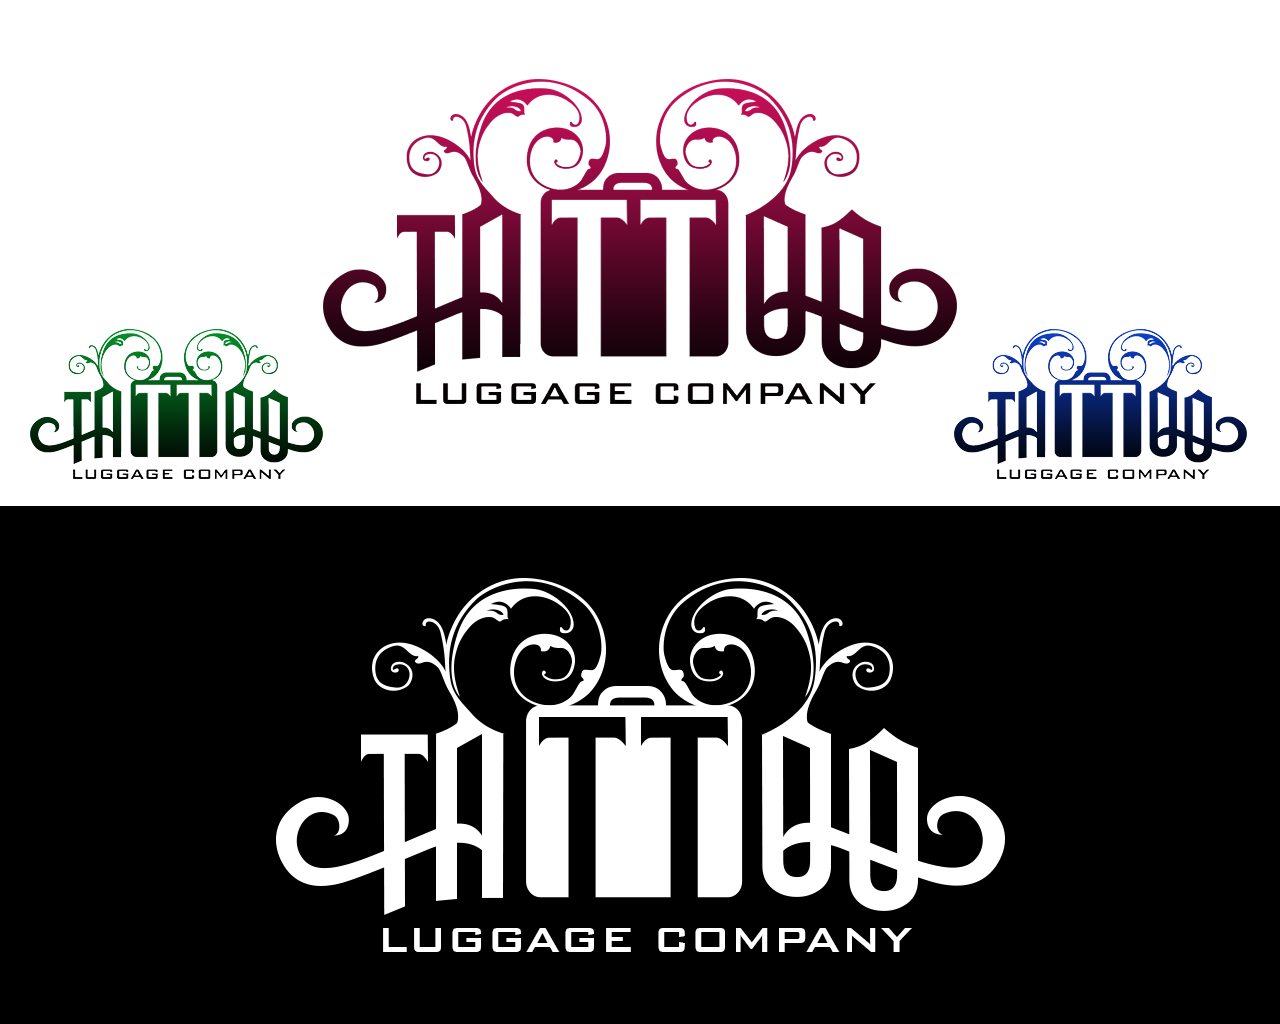 Logo Design by philipprince - Entry No. 158 in the Logo Design Contest Artistic Logo Design for Tattoo Luggage Company.